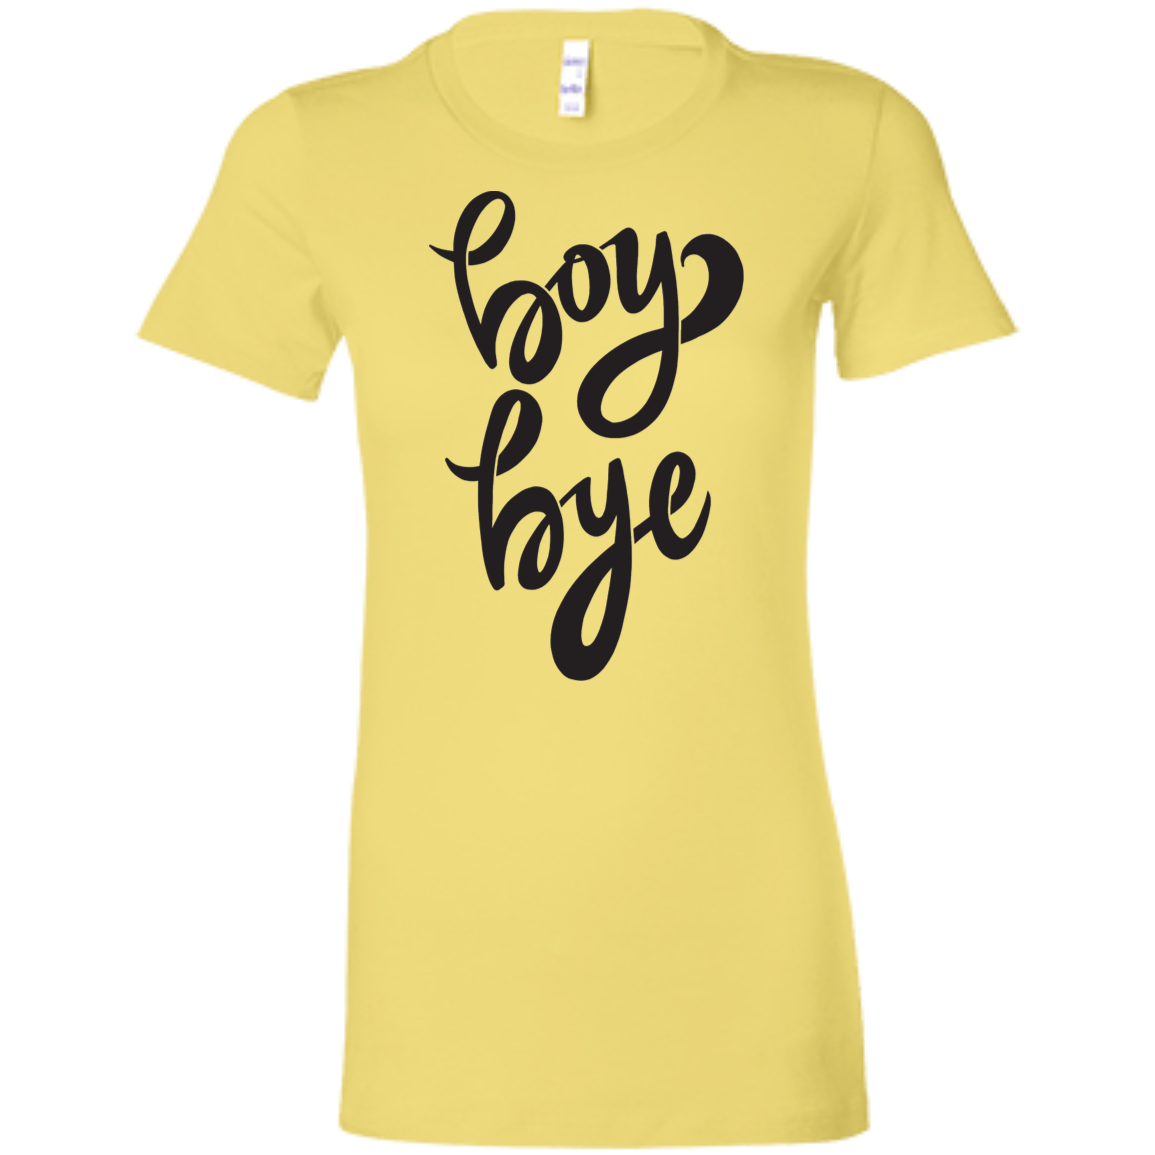 Boy Bye Slim Fit Women's T-Shirt